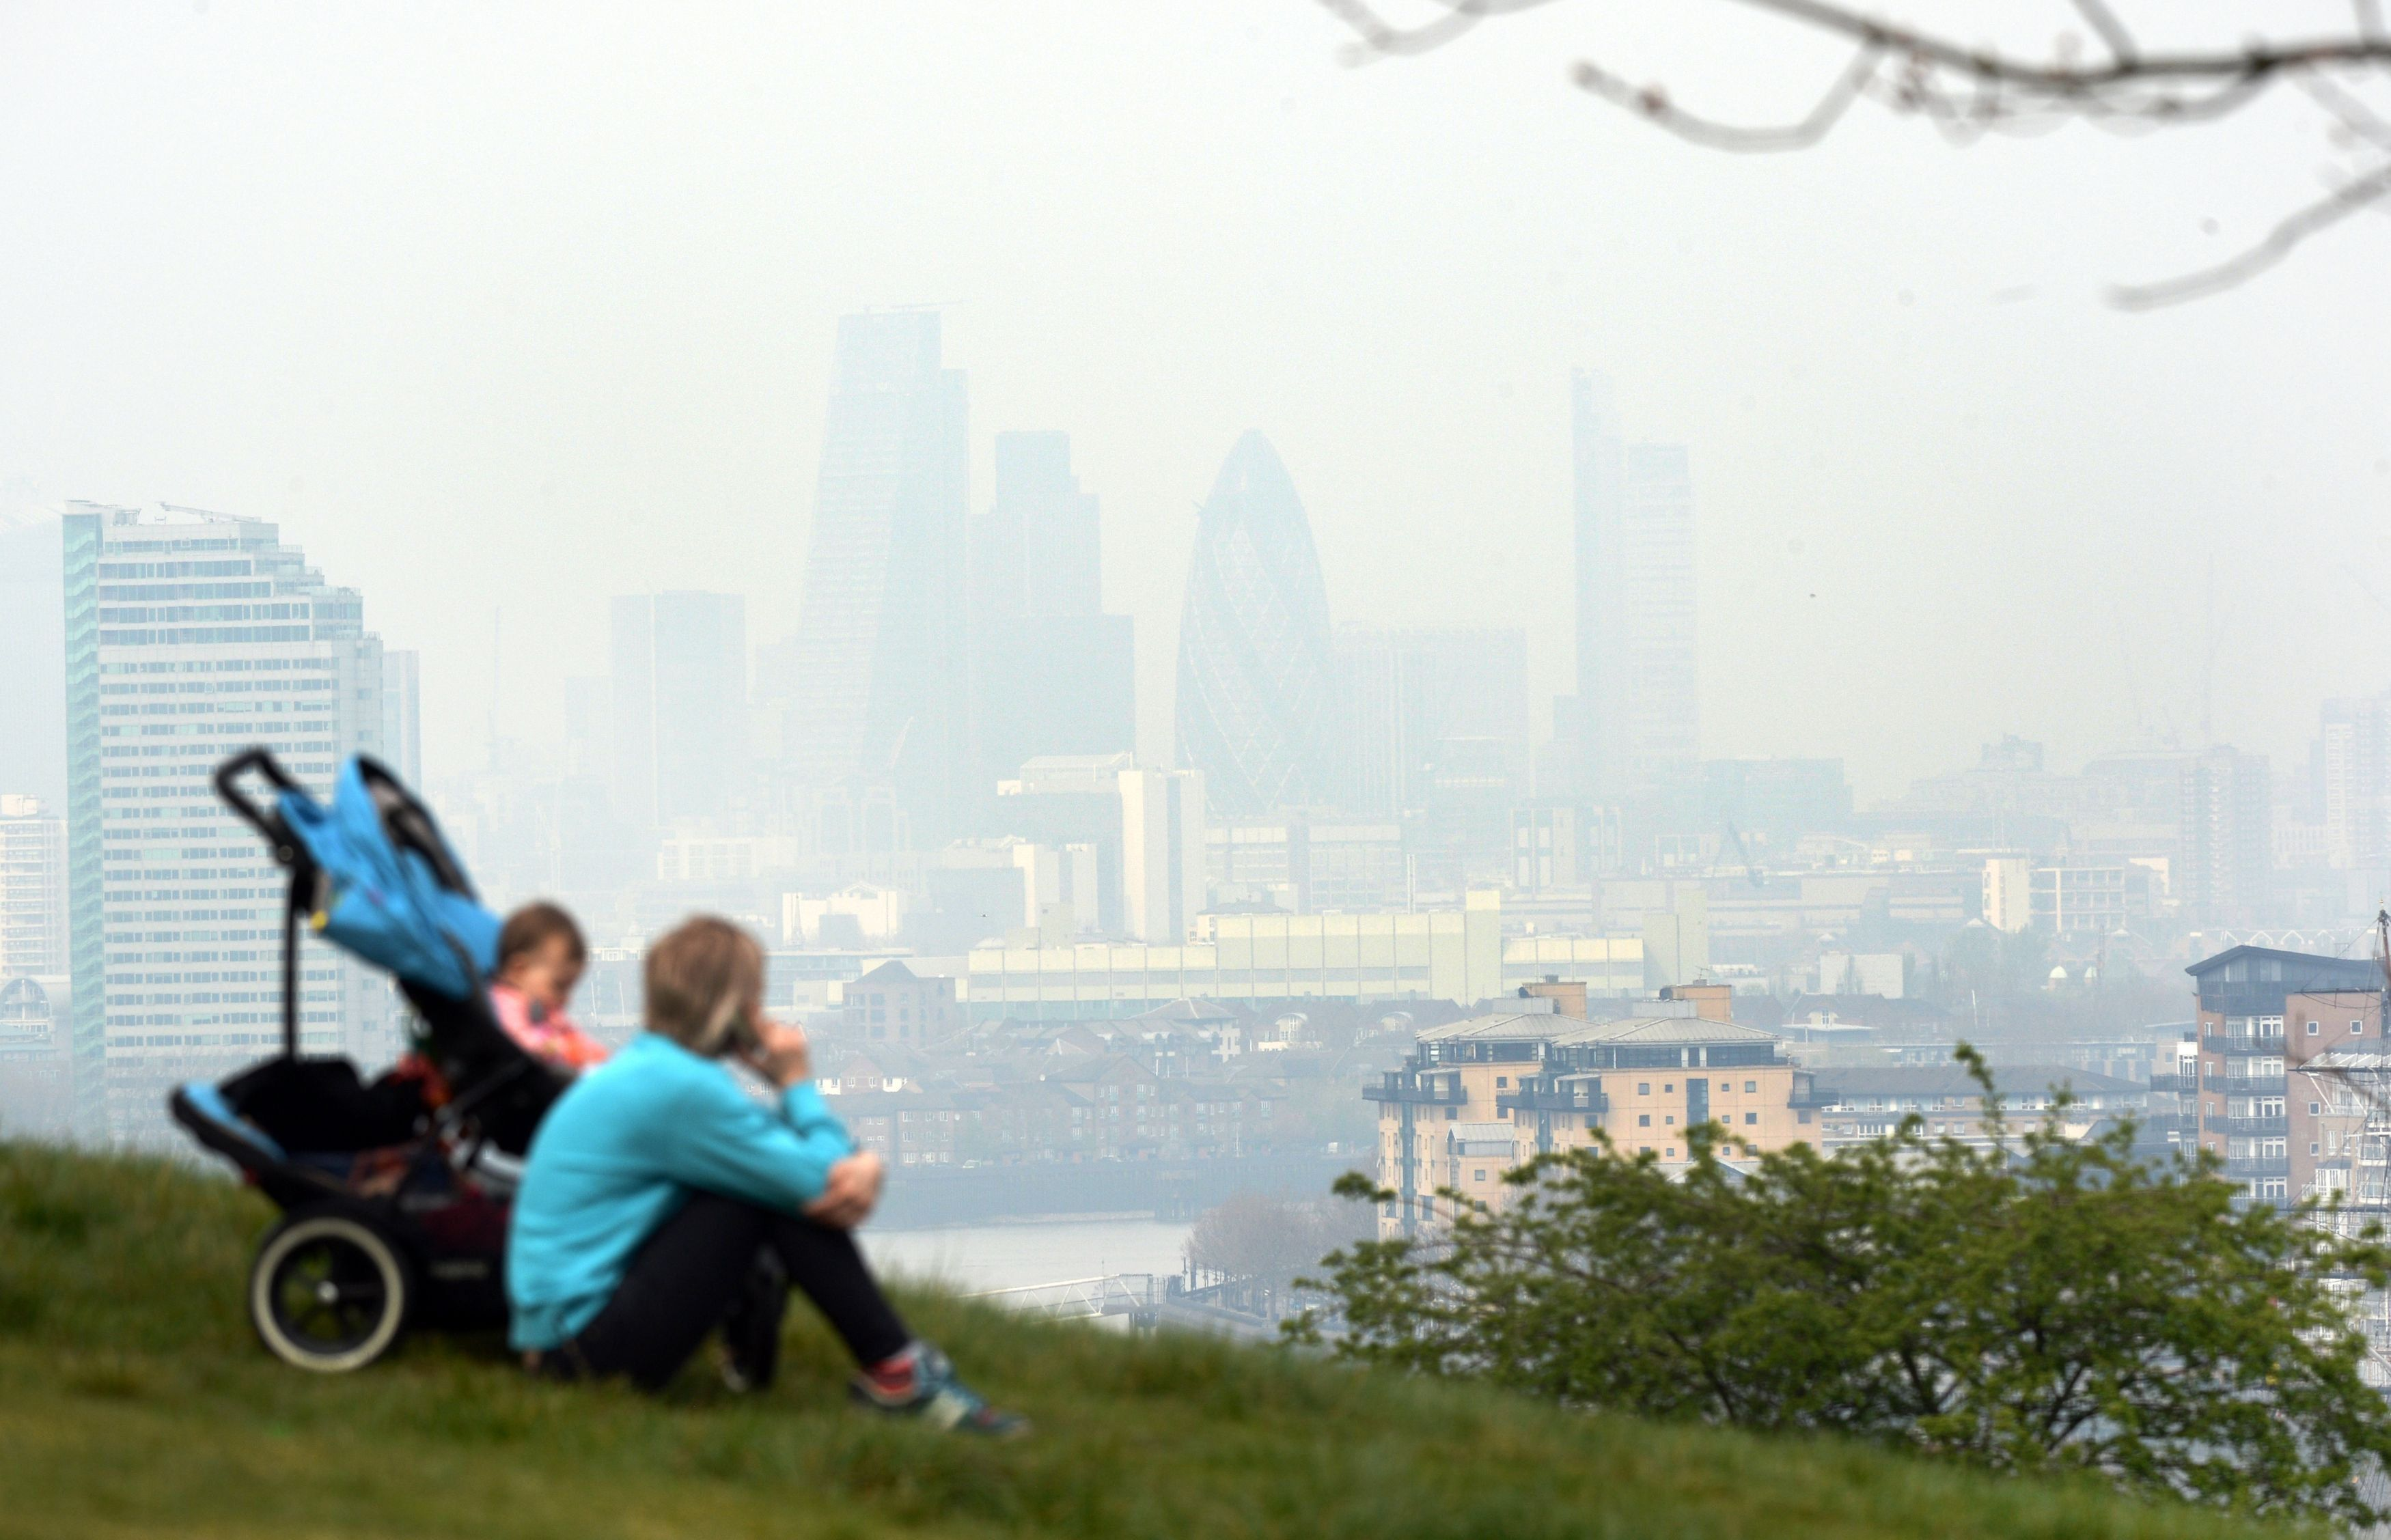 United Kingdom air pollution is a 'national health emergency', MPs warn